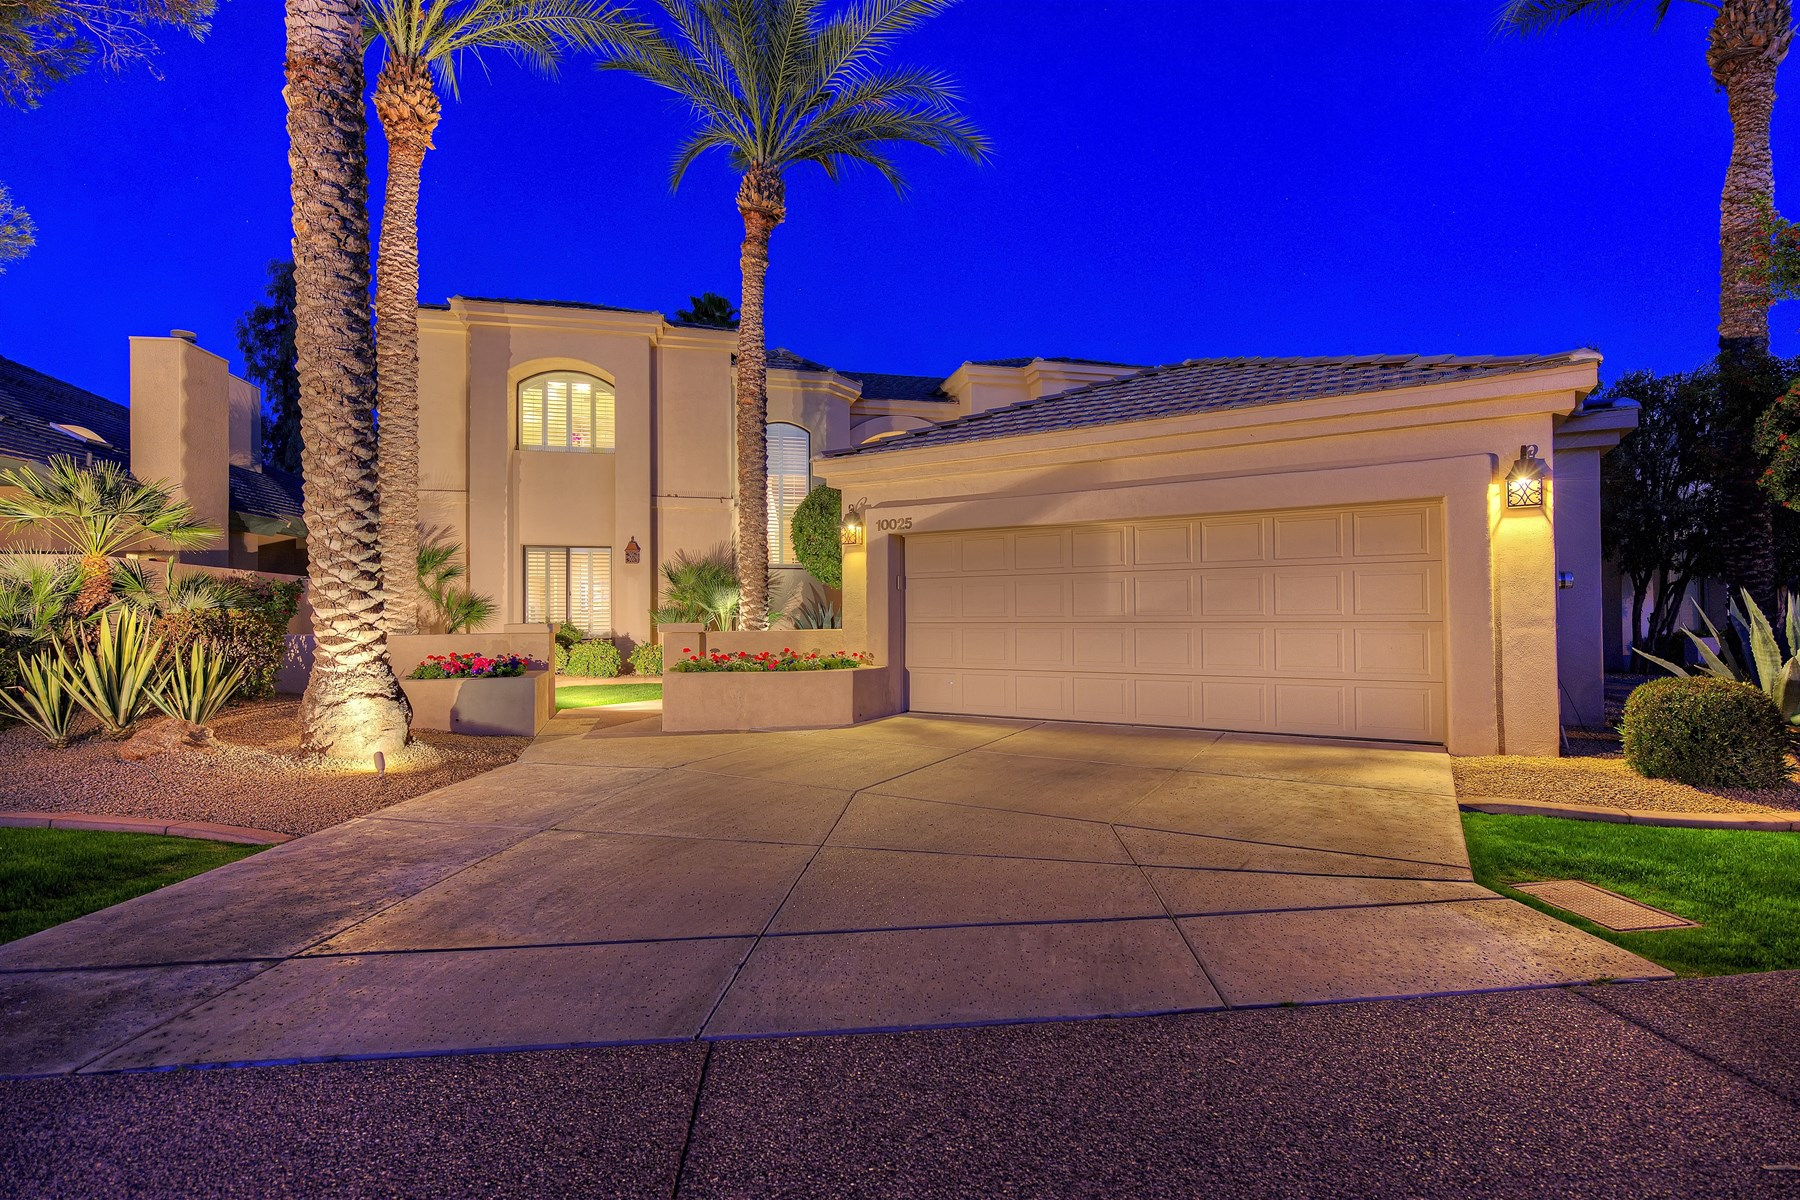 Single Family Home for Sale at Elegant & Comfortable Ambiance In Gated Enclave Of North Meadows In Gainey Ranch 10025 N 78th Place Scottsdale, Arizona 85258 United States